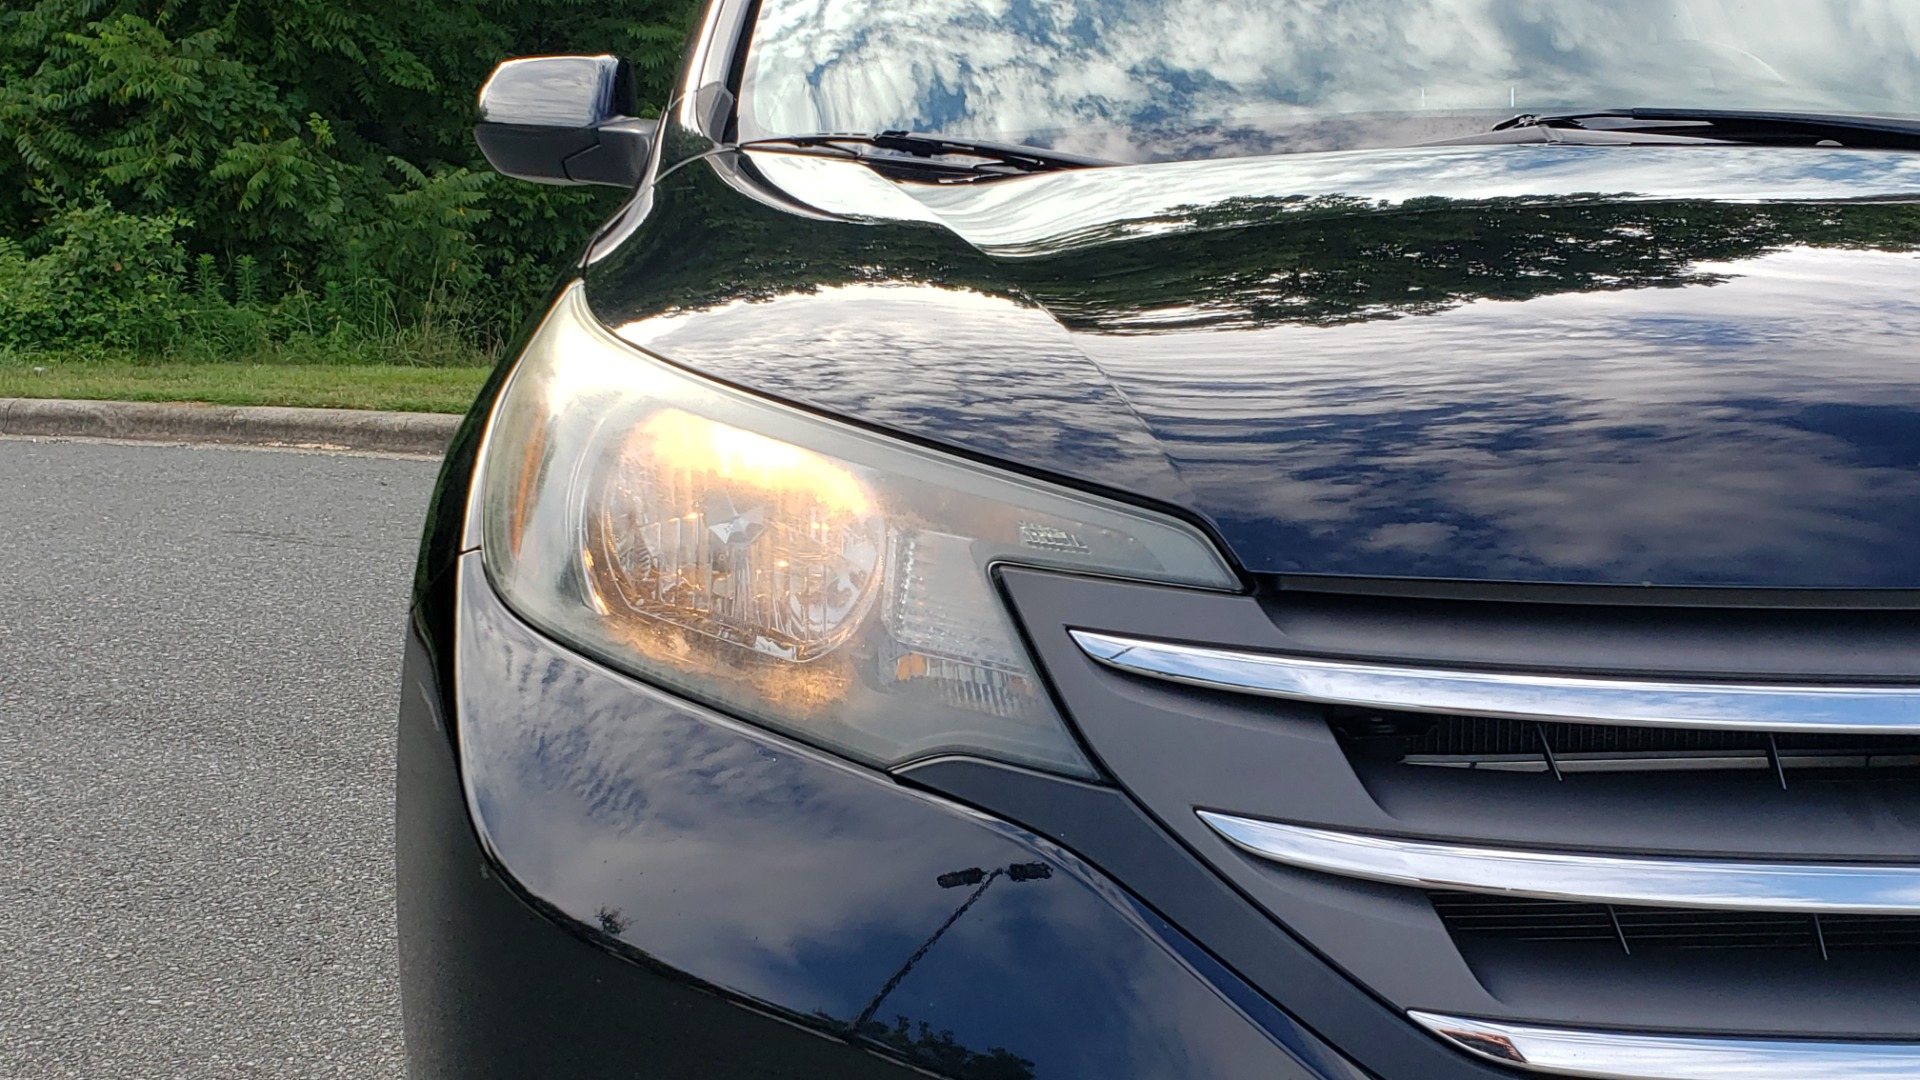 Used 2012 Honda CR-V EX-L / AWD / 5DR / SUNROOF / HEATED SEATS / REARVIEW for sale Sold at Formula Imports in Charlotte NC 28227 20